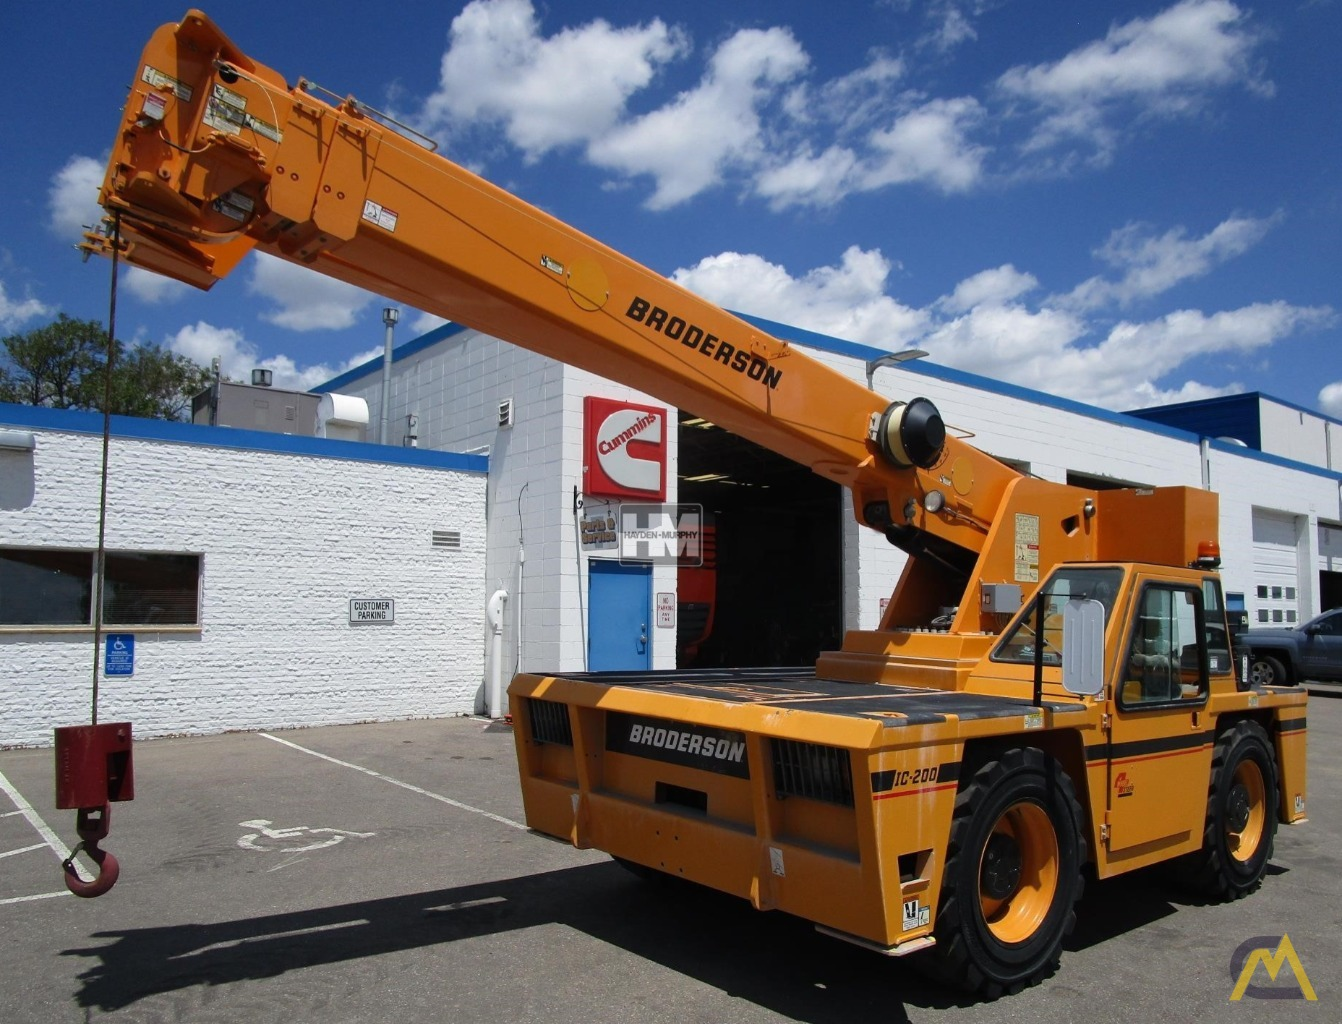 Broderson IC-200-2H 15-Ton Industrial Carry Deck Crane 28